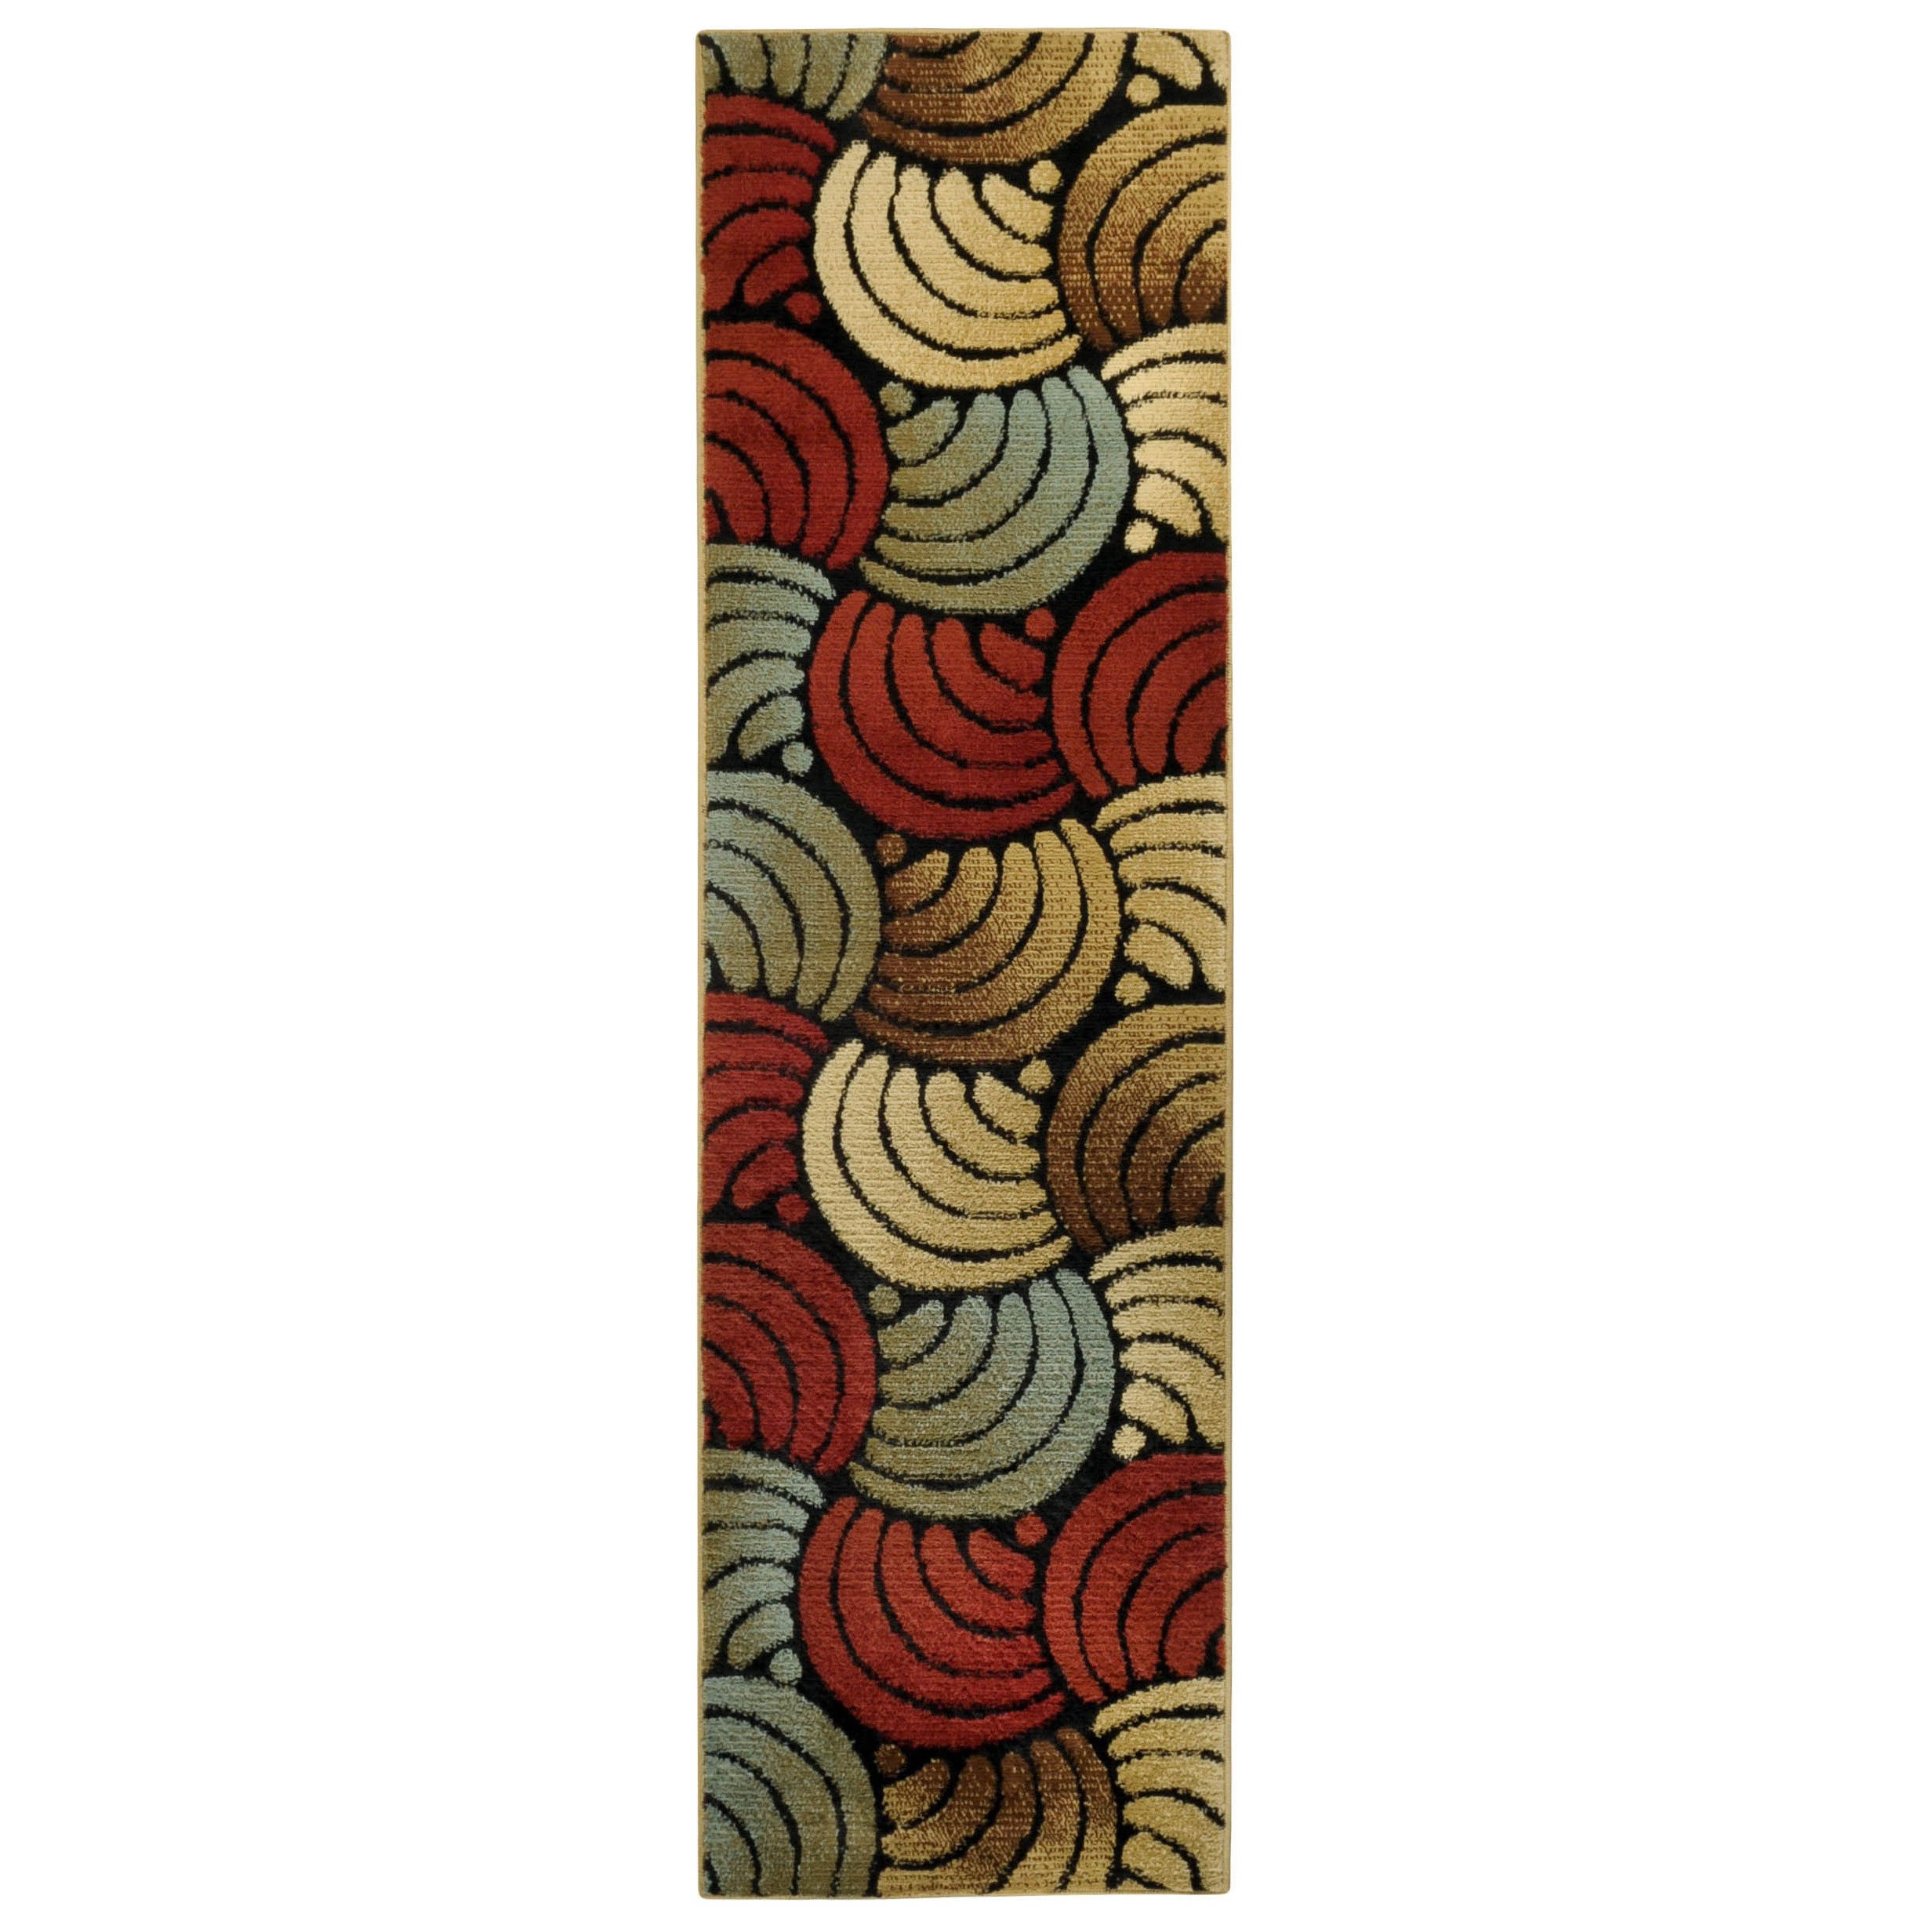 Multicolored Floral Rose Rug (111 X 611 Runner)